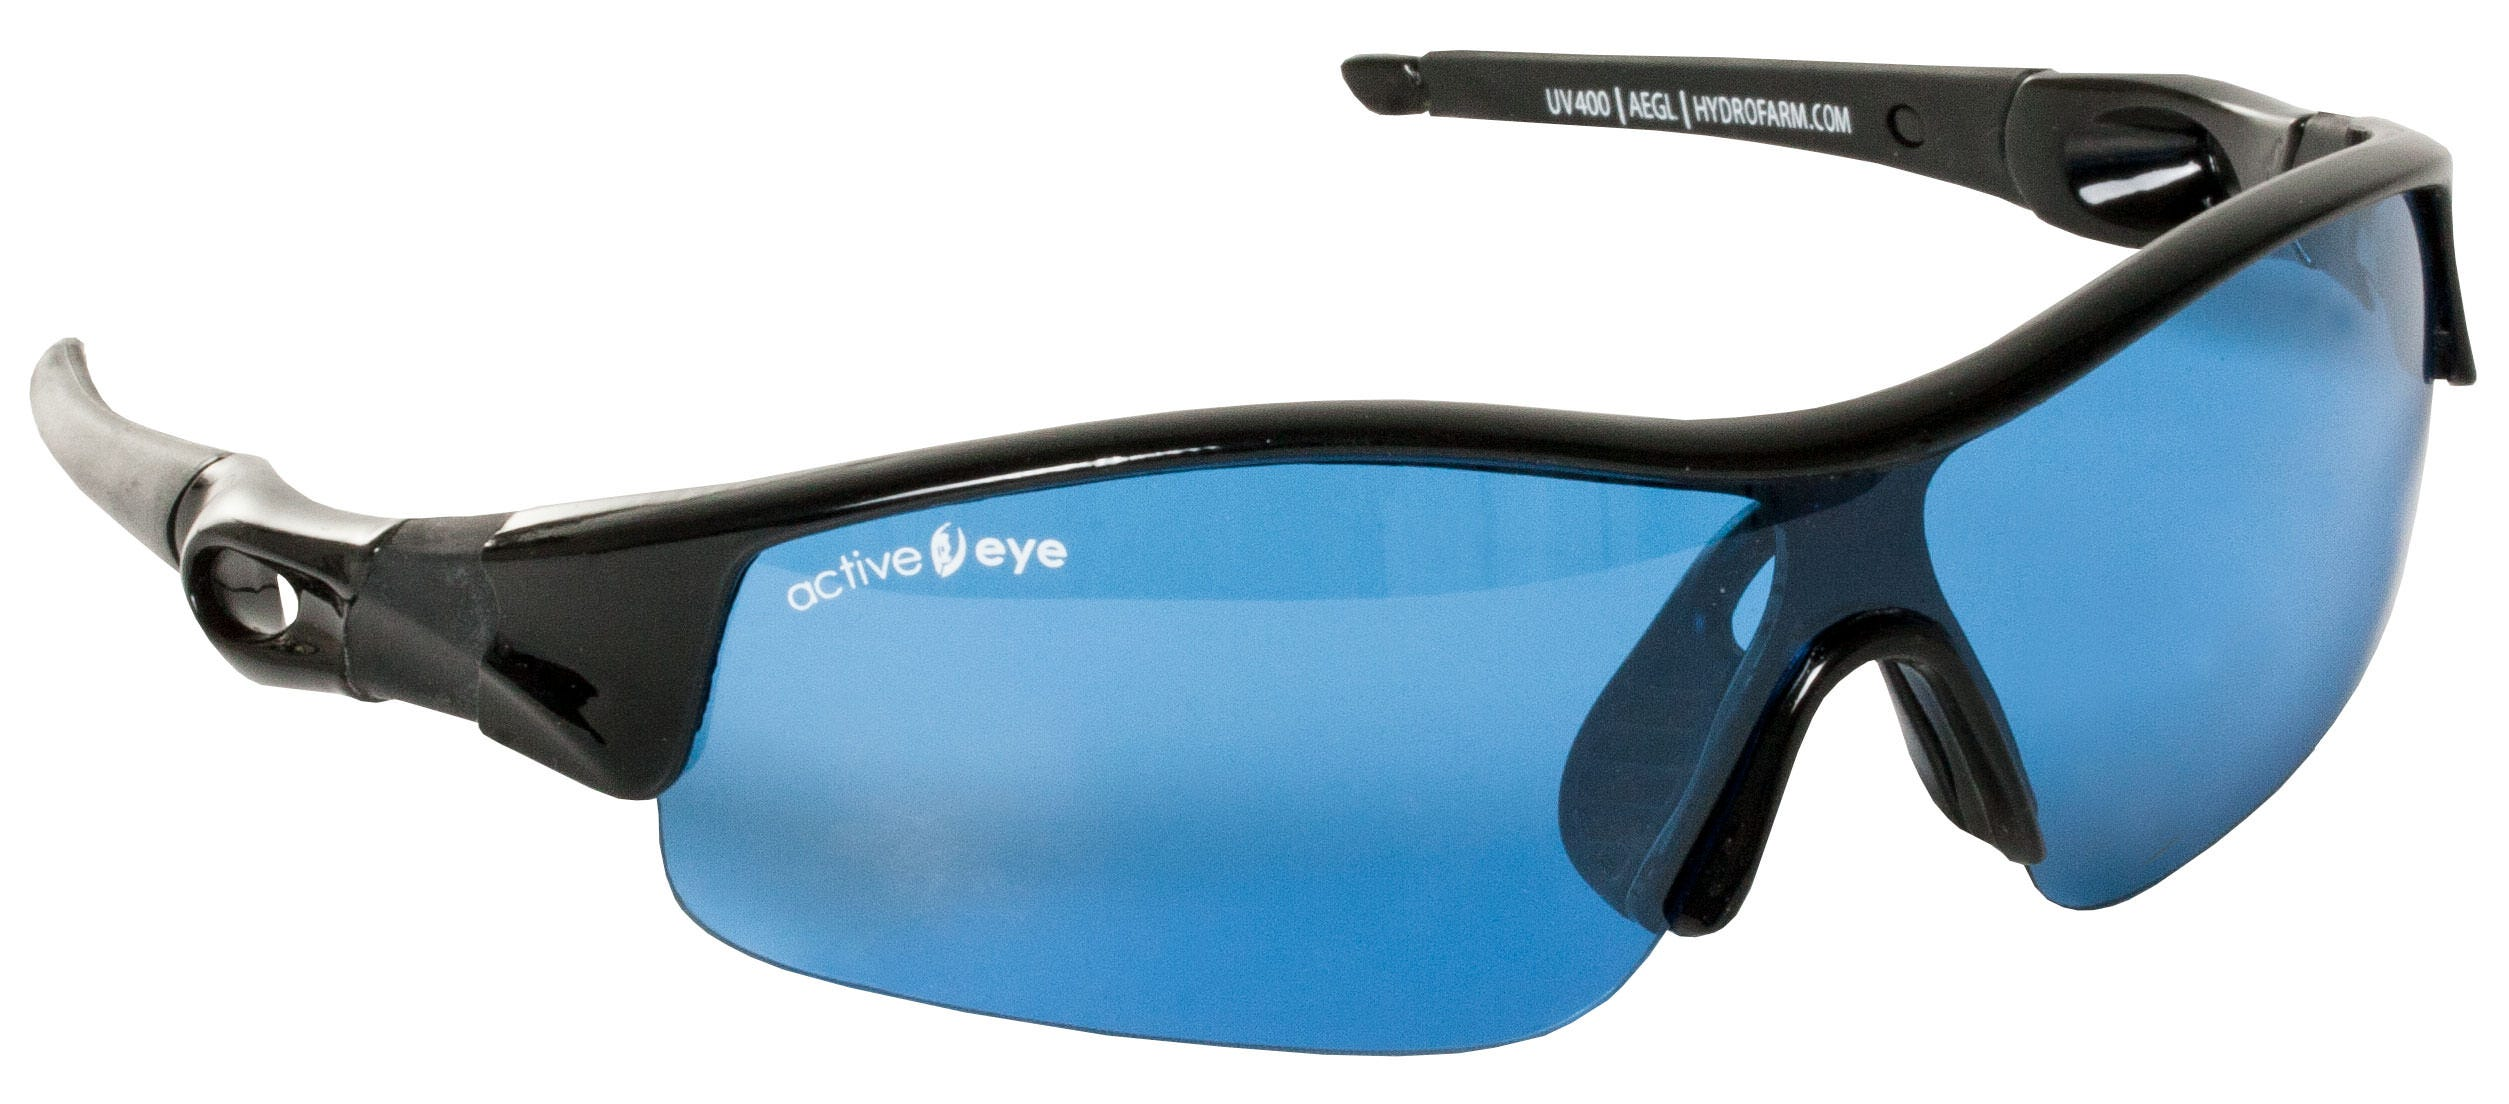 Active Eye Growroom Glasses